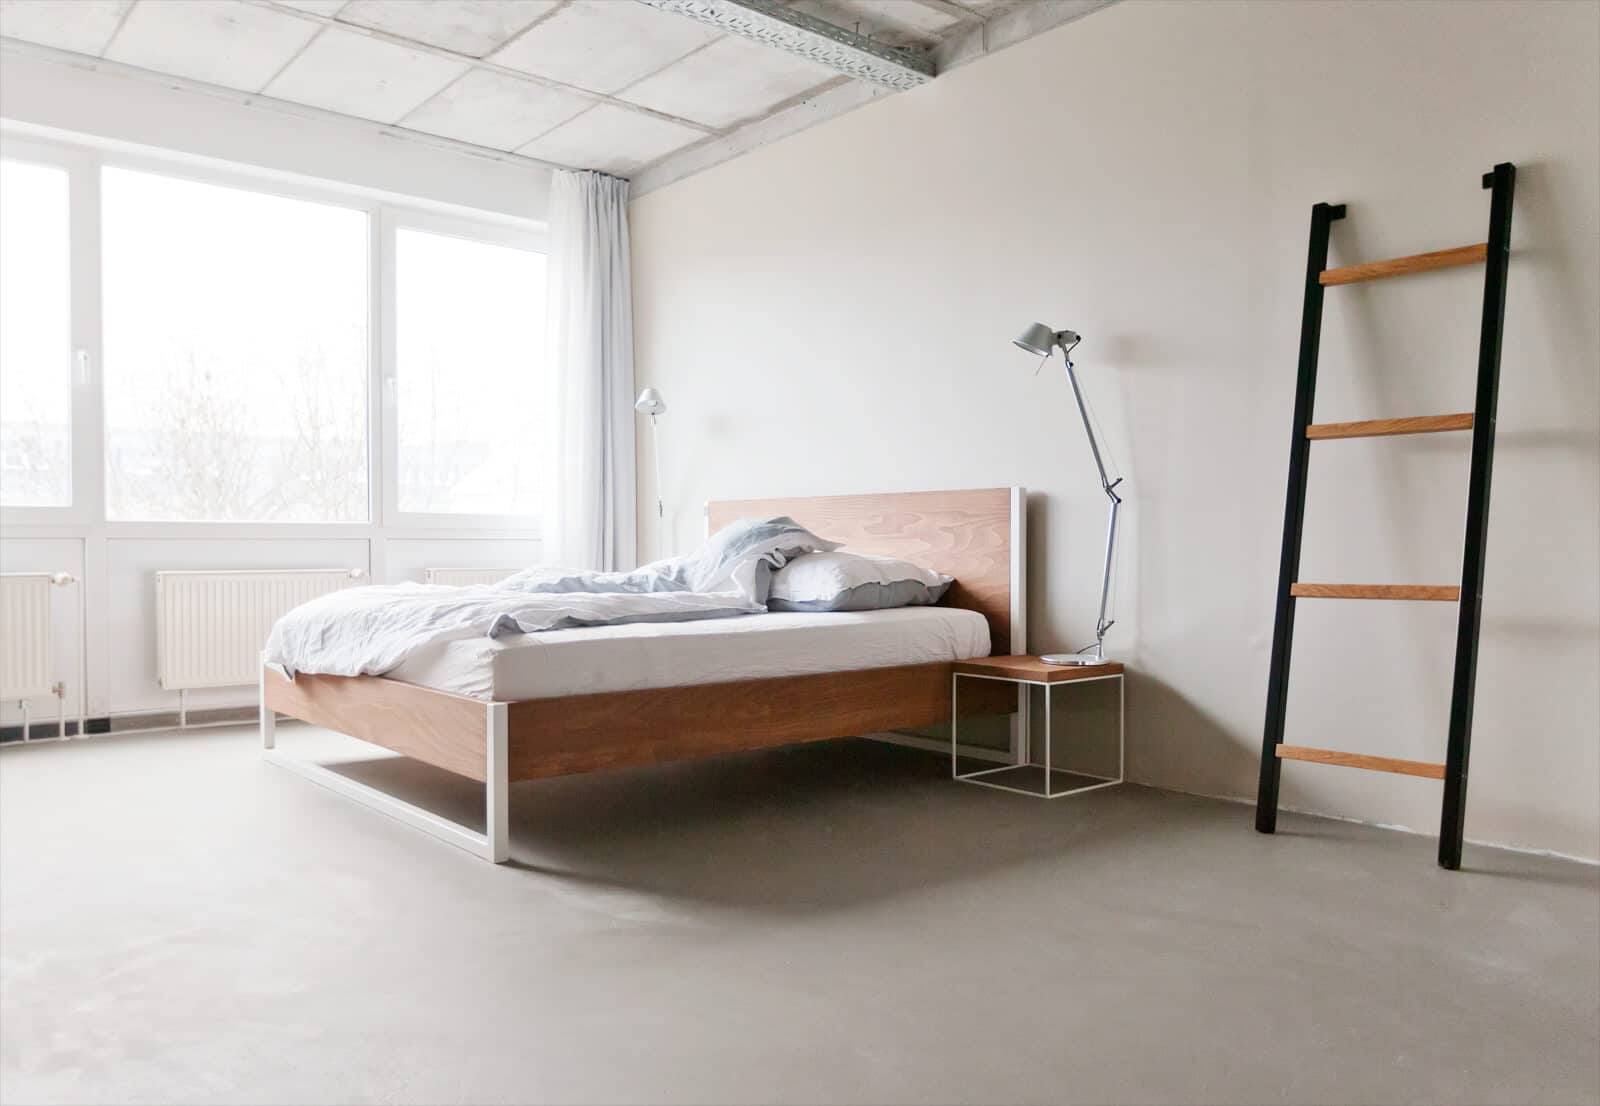 loft vintage industrial bett massivholz und stahl n51e12 design manufacture. Black Bedroom Furniture Sets. Home Design Ideas